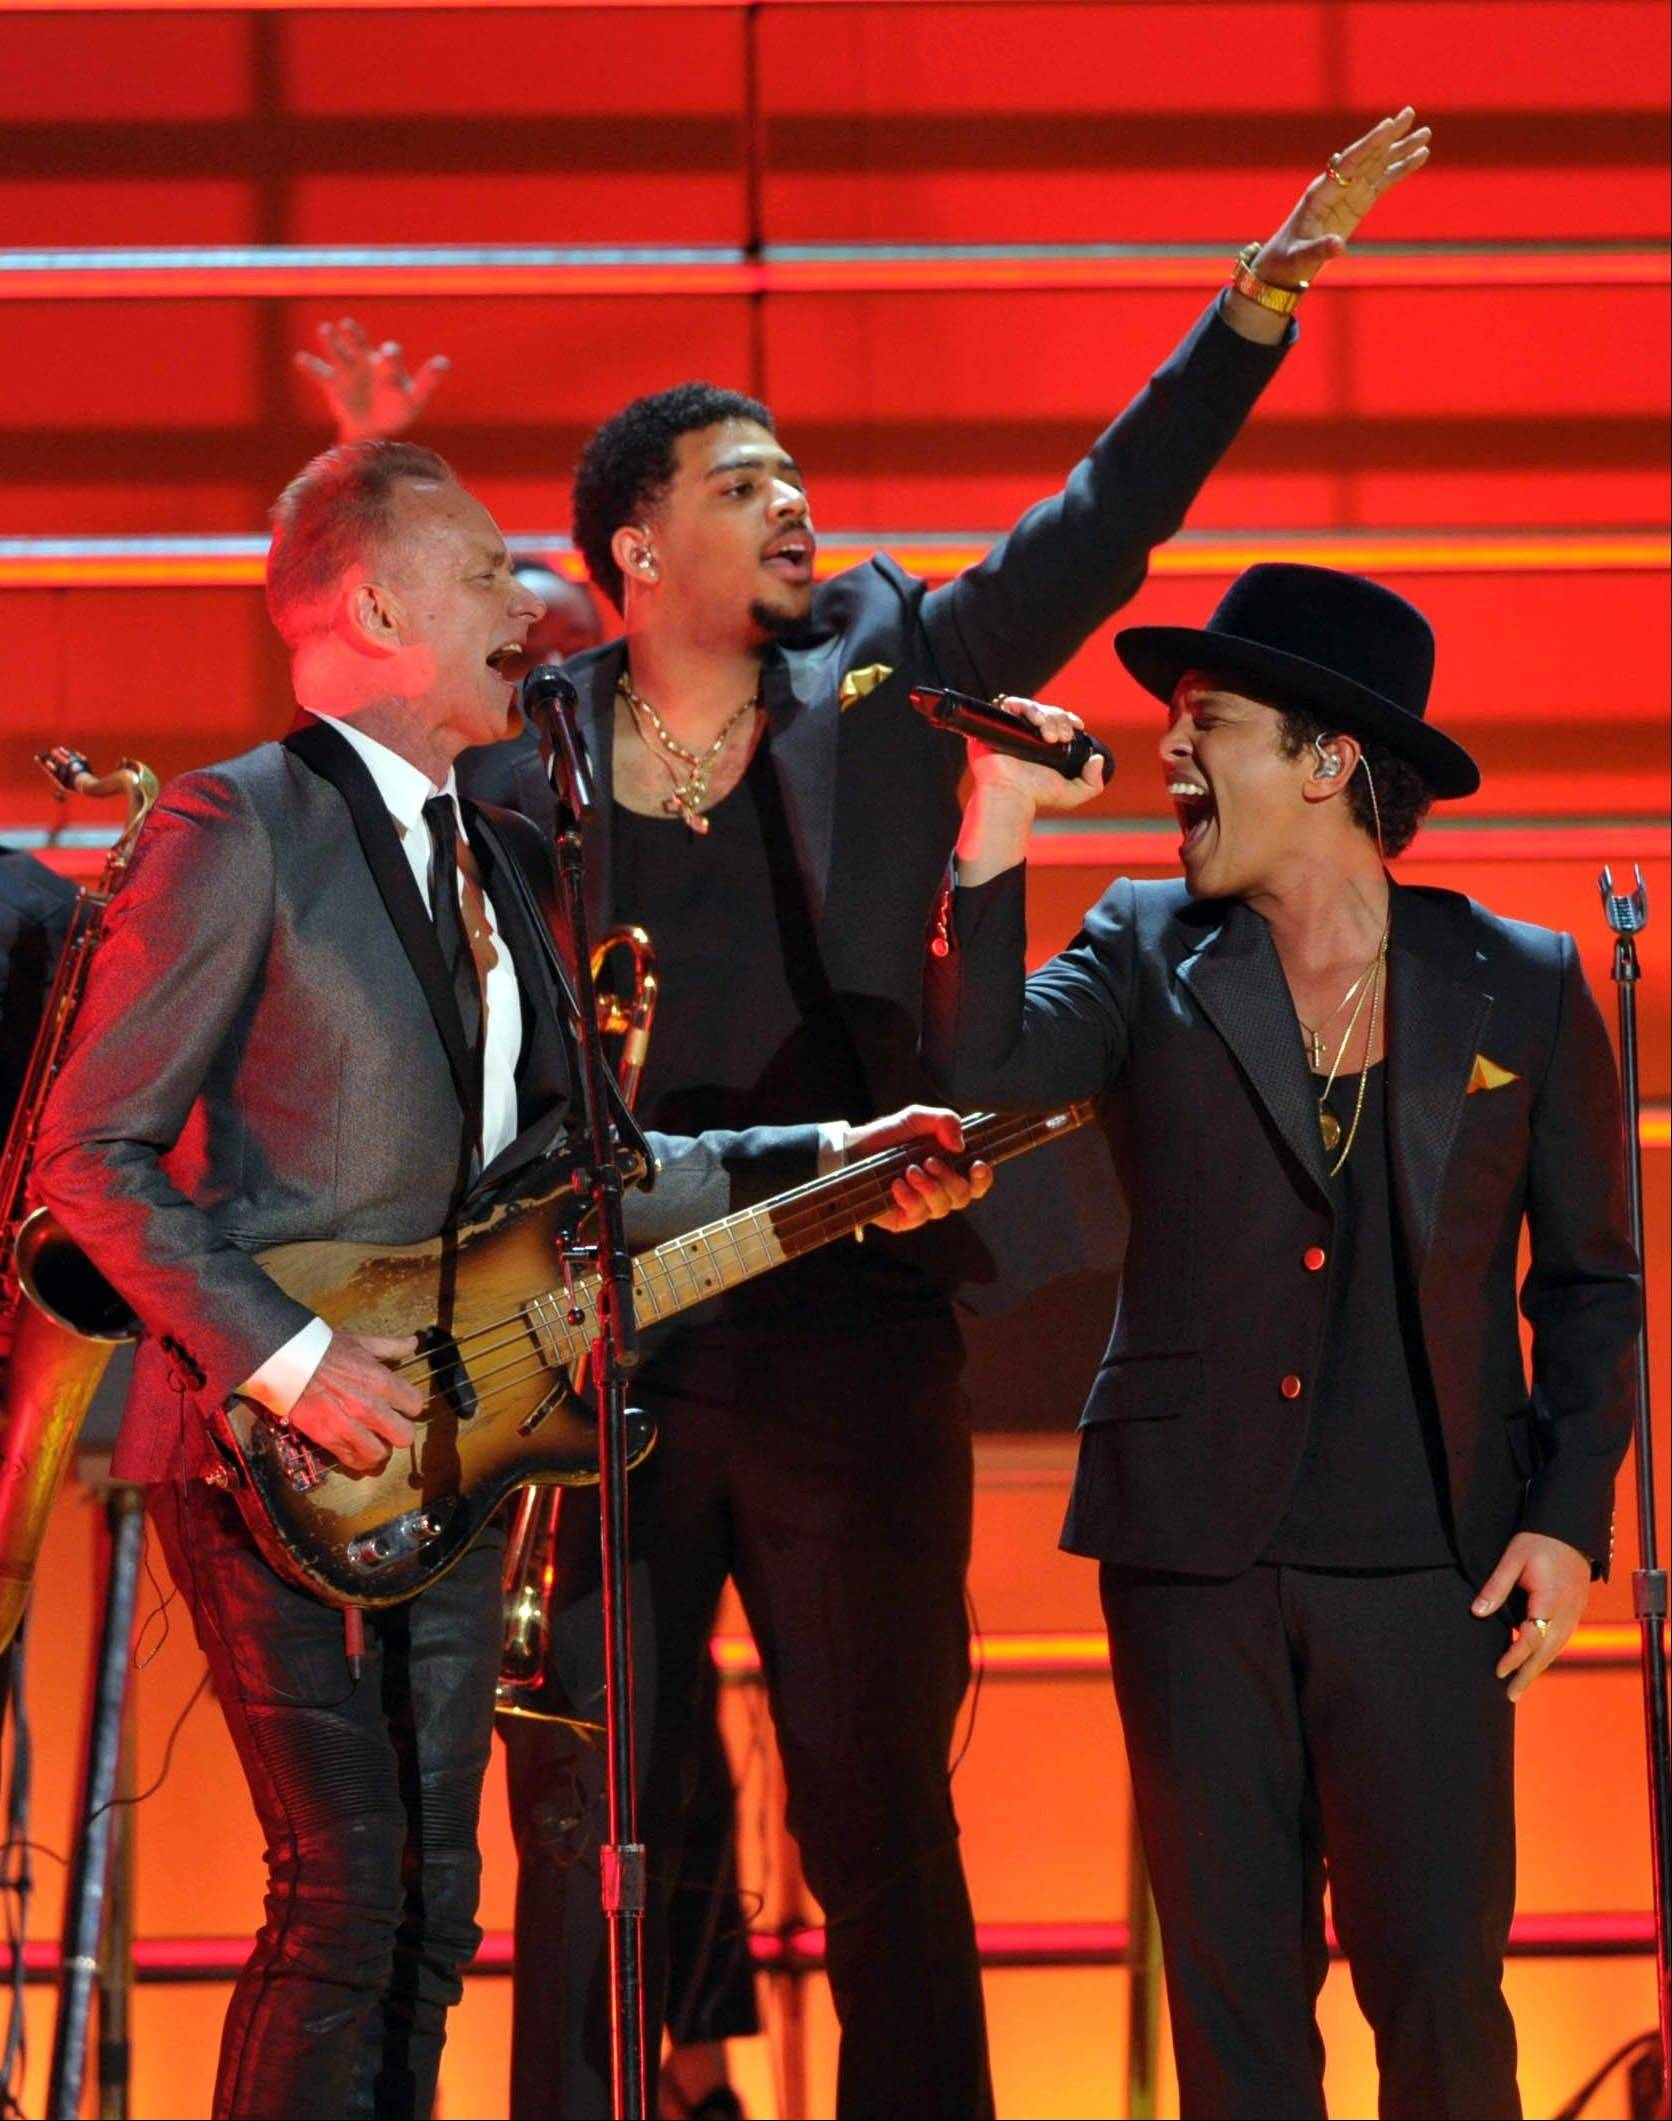 Musicians Sting, left, and Bruno Mars perform a tribute to Bob Marley at the 55th annual Grammy Awards on Sunday, Feb. 10, 2013, in Los Angeles.